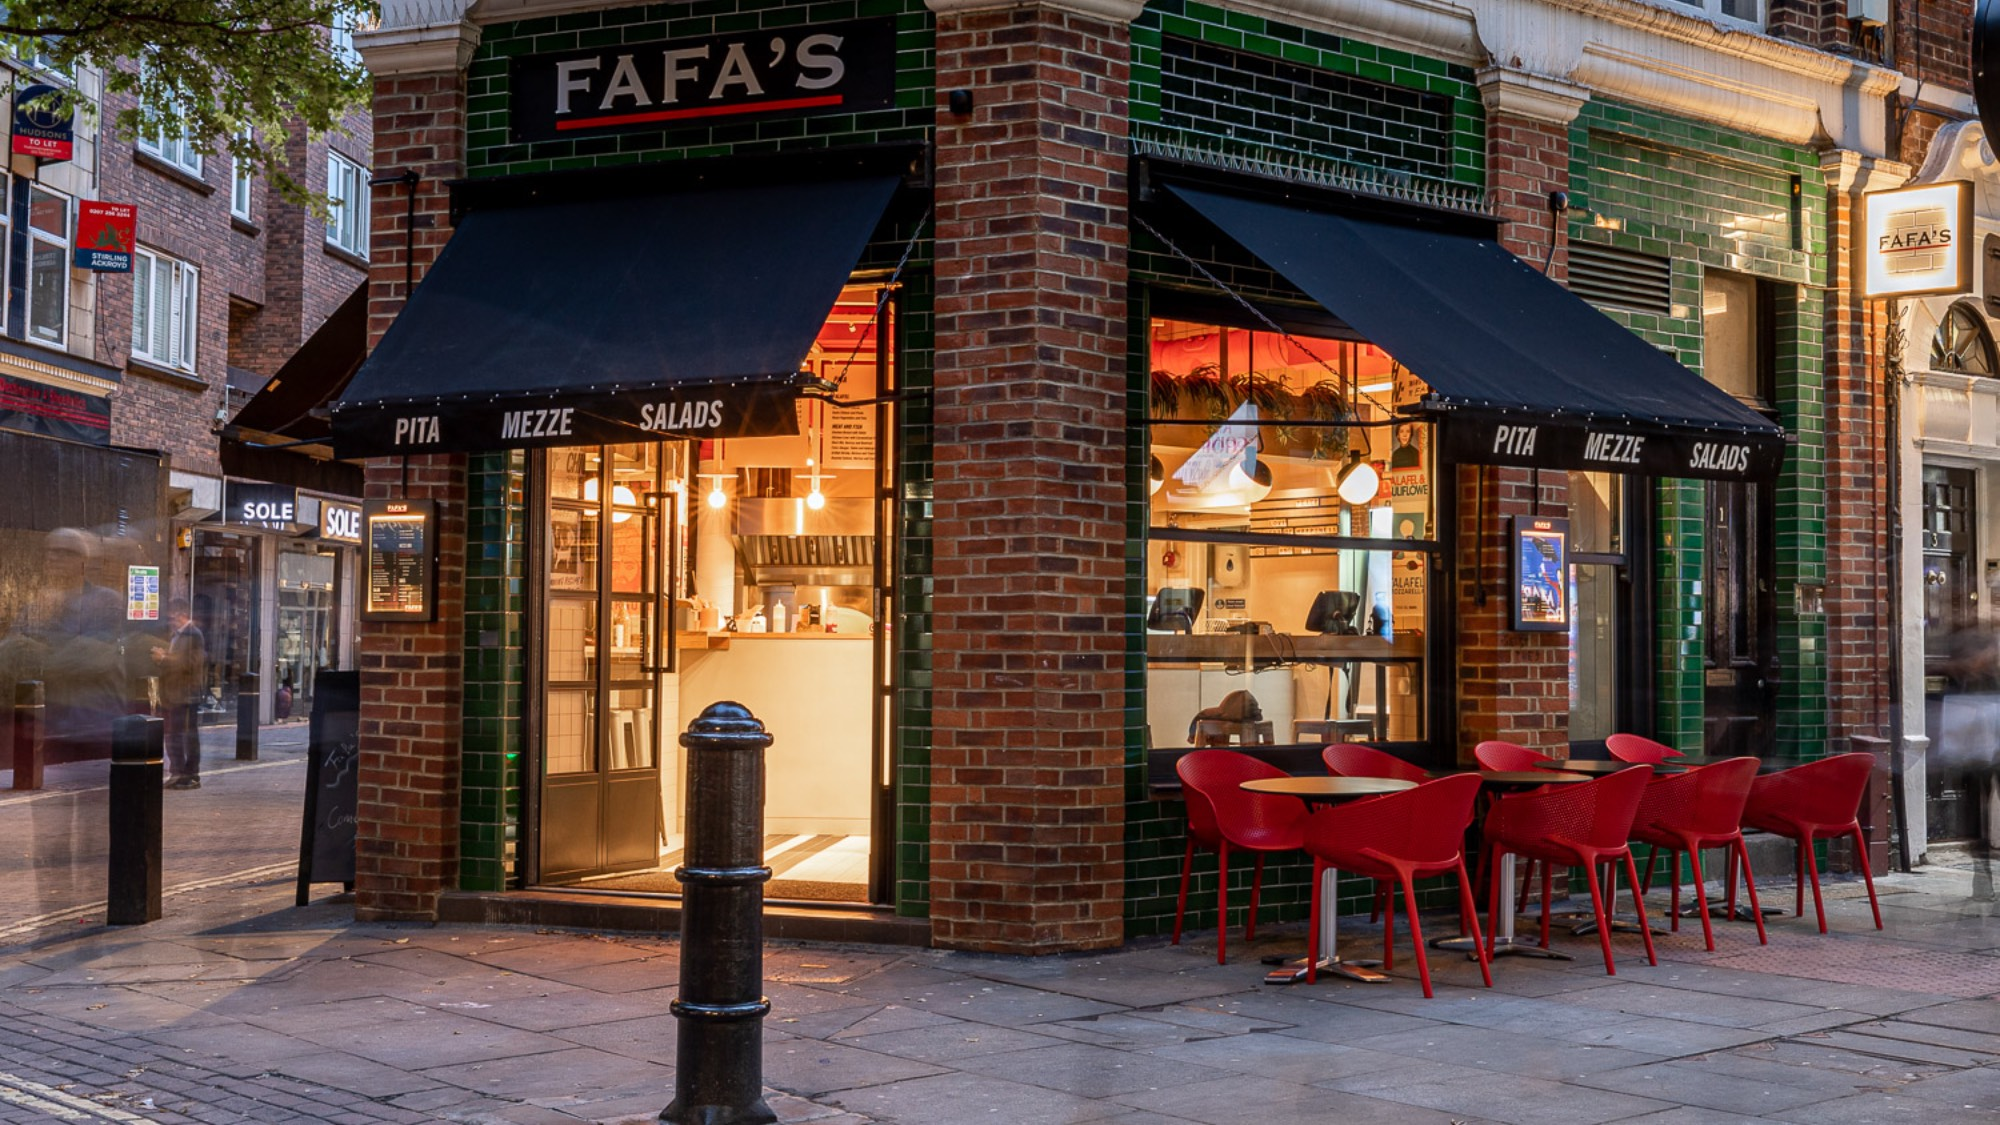 Street view of Fafa's new restaurant in London